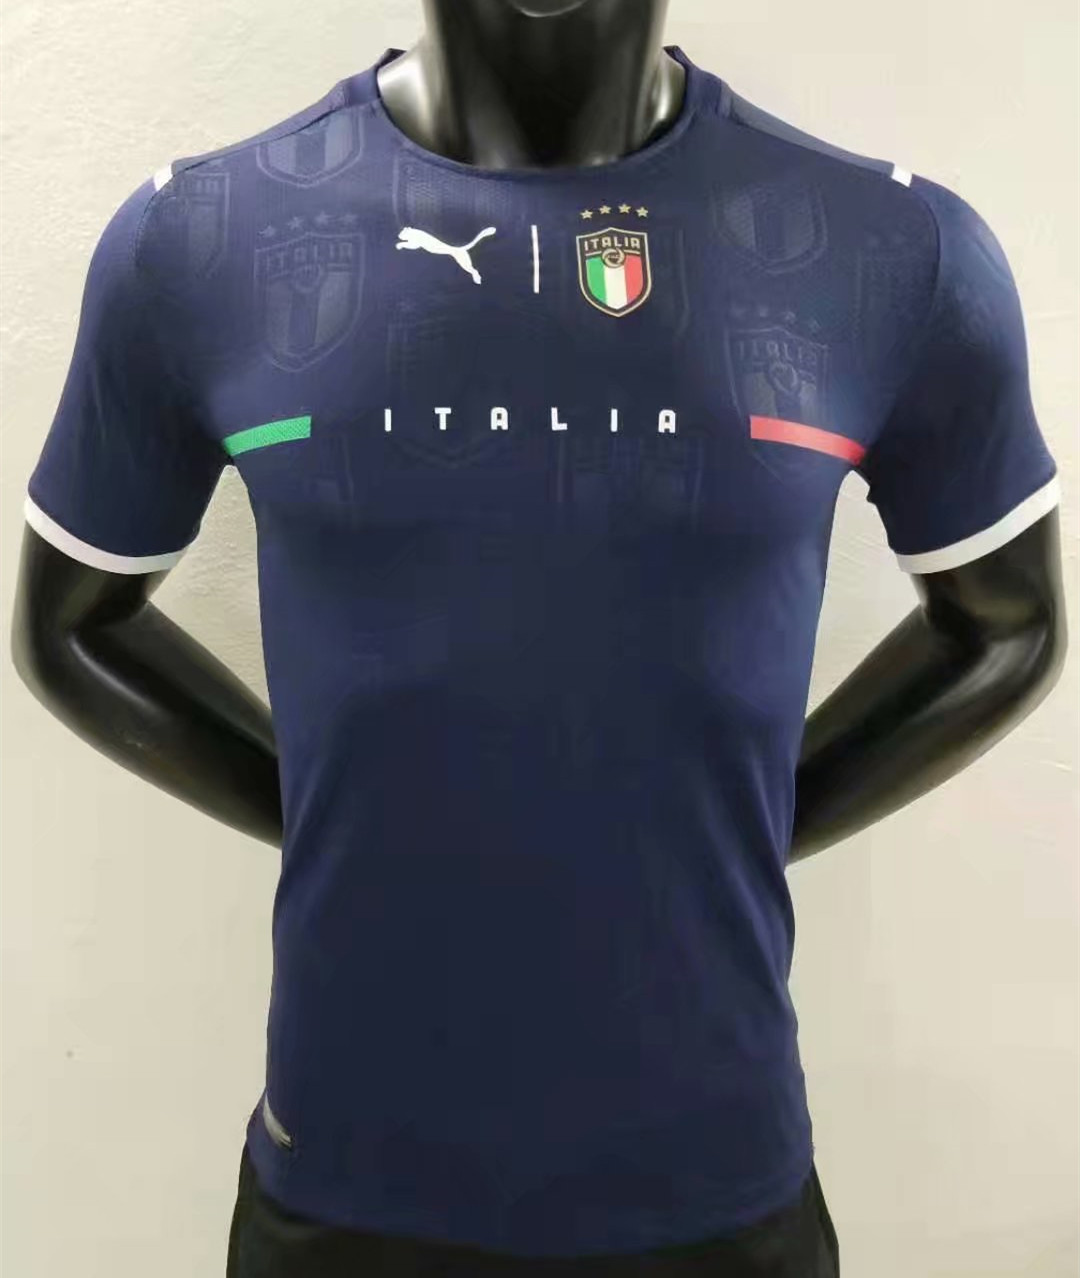 Player Version Italy 21/22 Goalkeeper Authentic Jersey